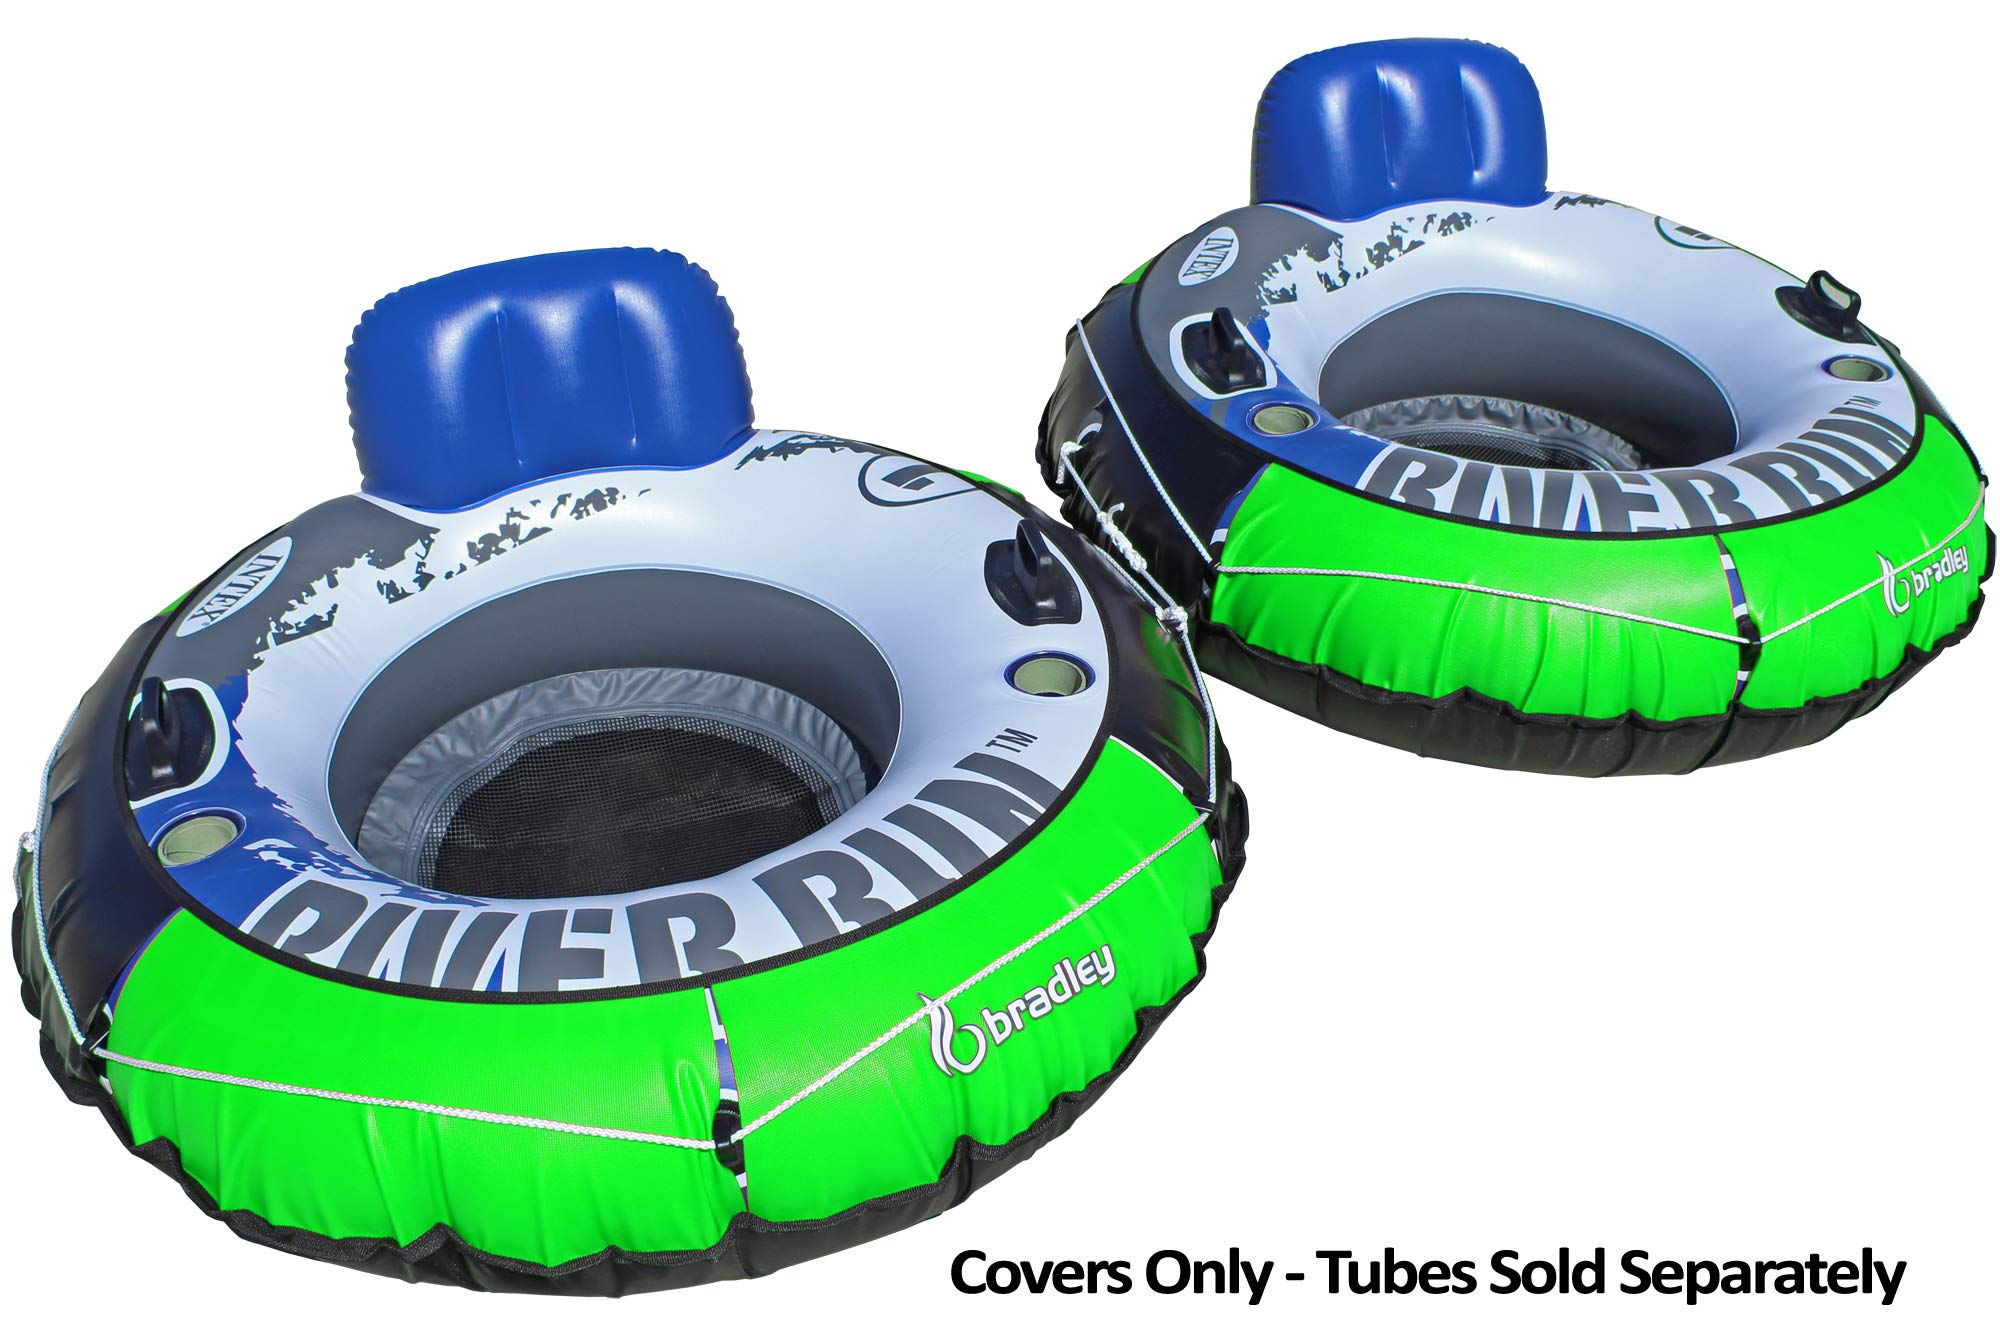 Bradley Heavy Duty River Tube Cover Only | Compatible with Intex River Run & Most 53'' Inflatable River Tube by Bradley